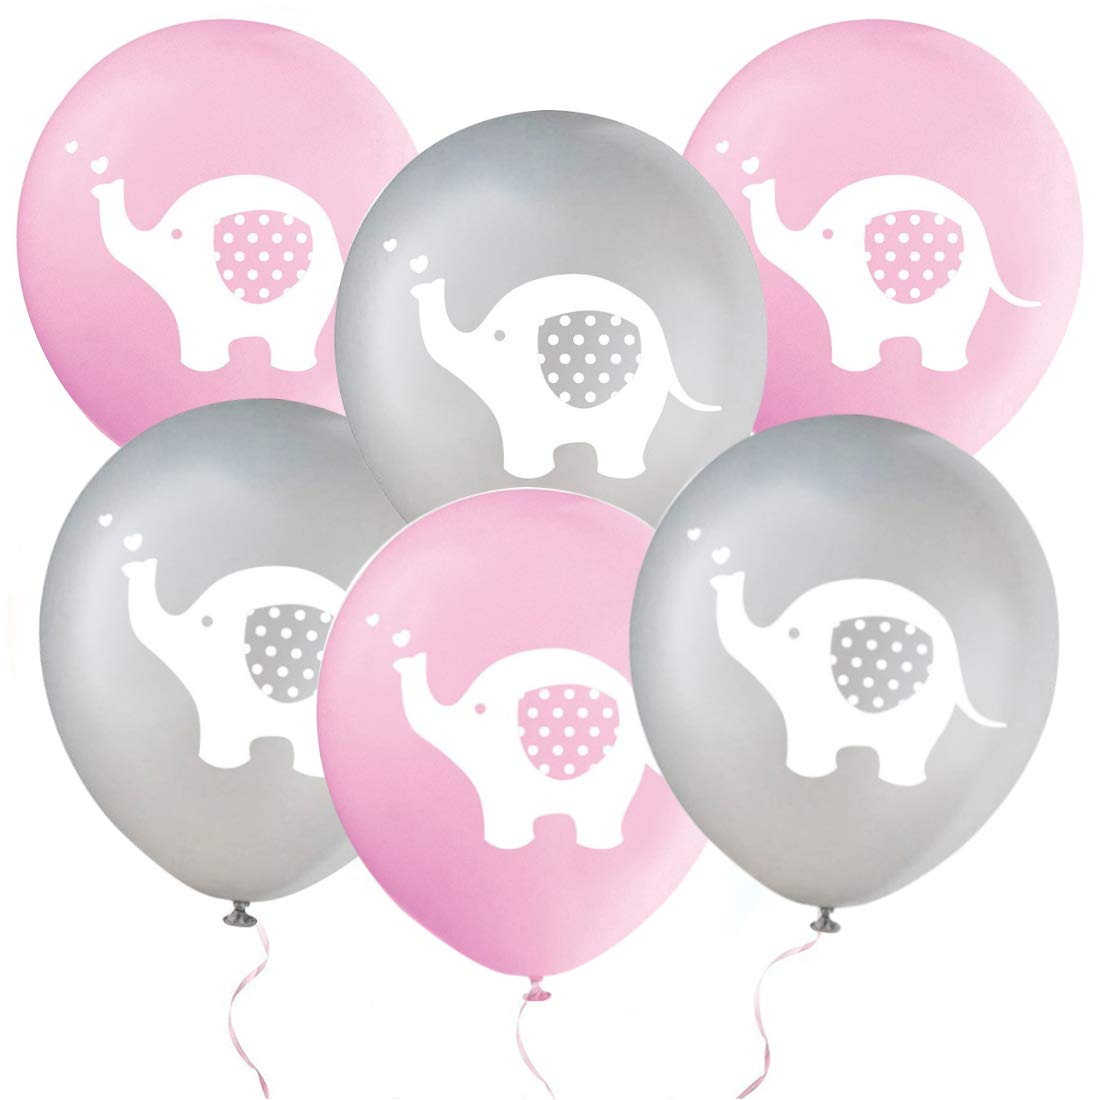 32 Pieces Elephant Party Balloons Birthday Girl Decorations Balloons Pink and Grey Elephant Latex Balloons for Kids Birthday Party Balloons, Baby Shower, Gender Reveal, Animal Themed Party Decorations (Pink & Grey)